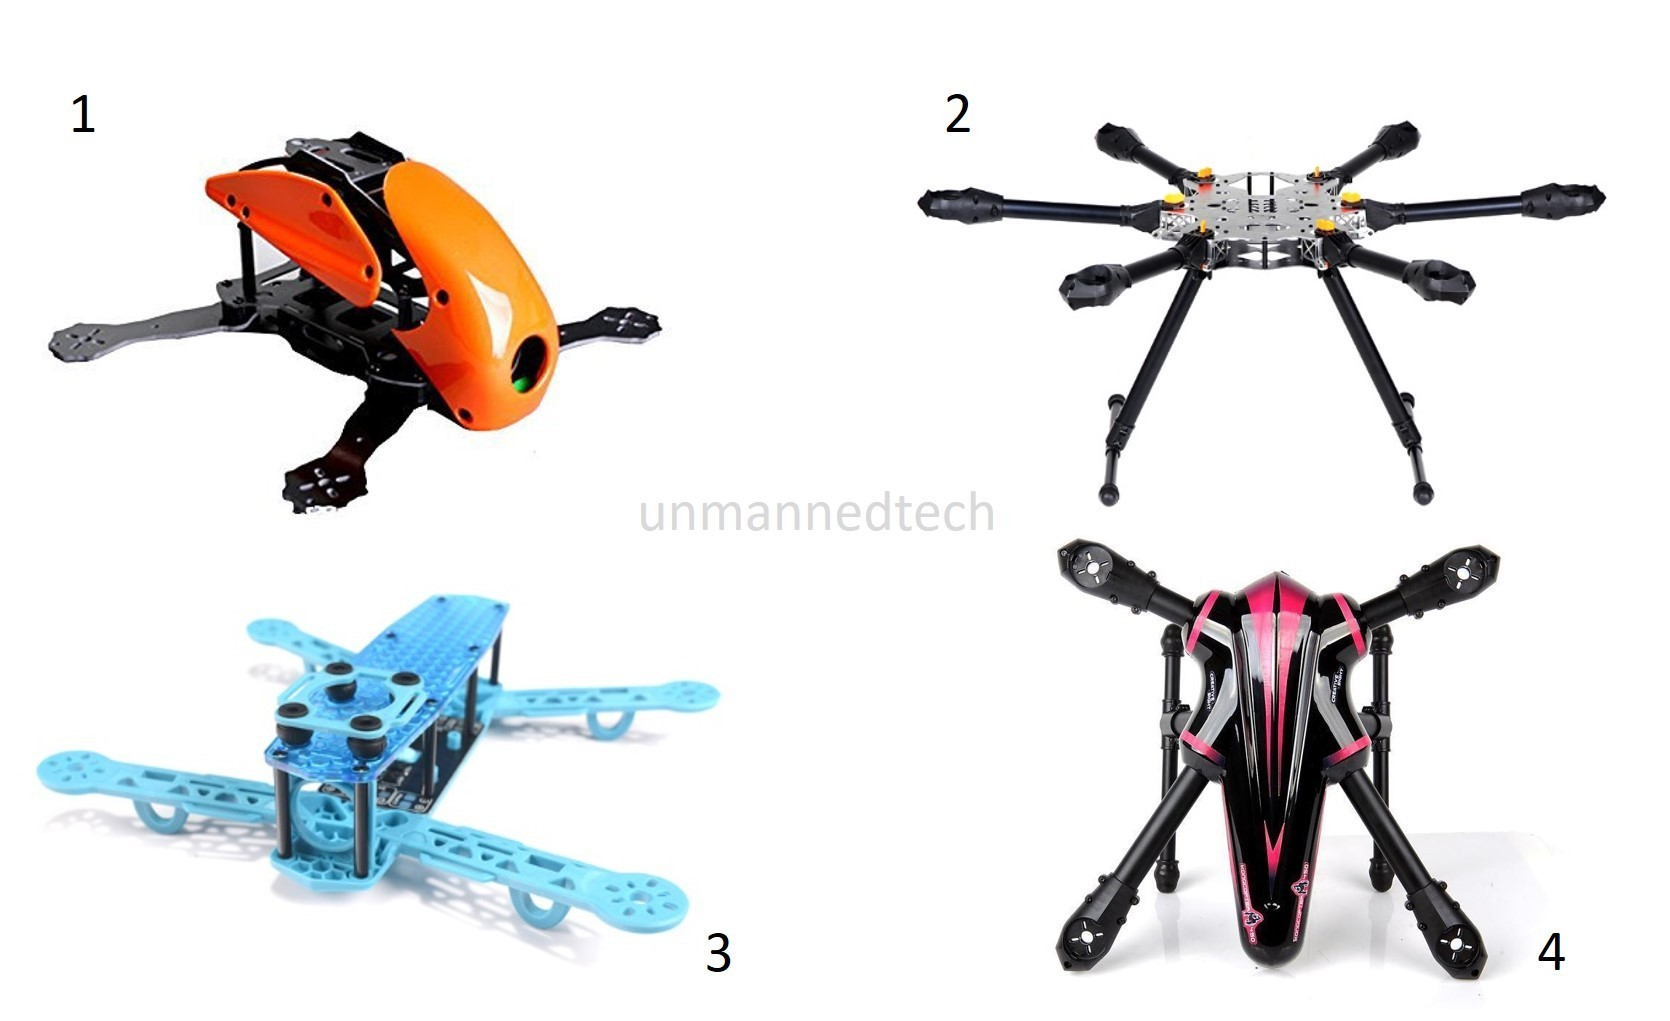 Anatomy of a multirotor drone - Guides - DroneTrest